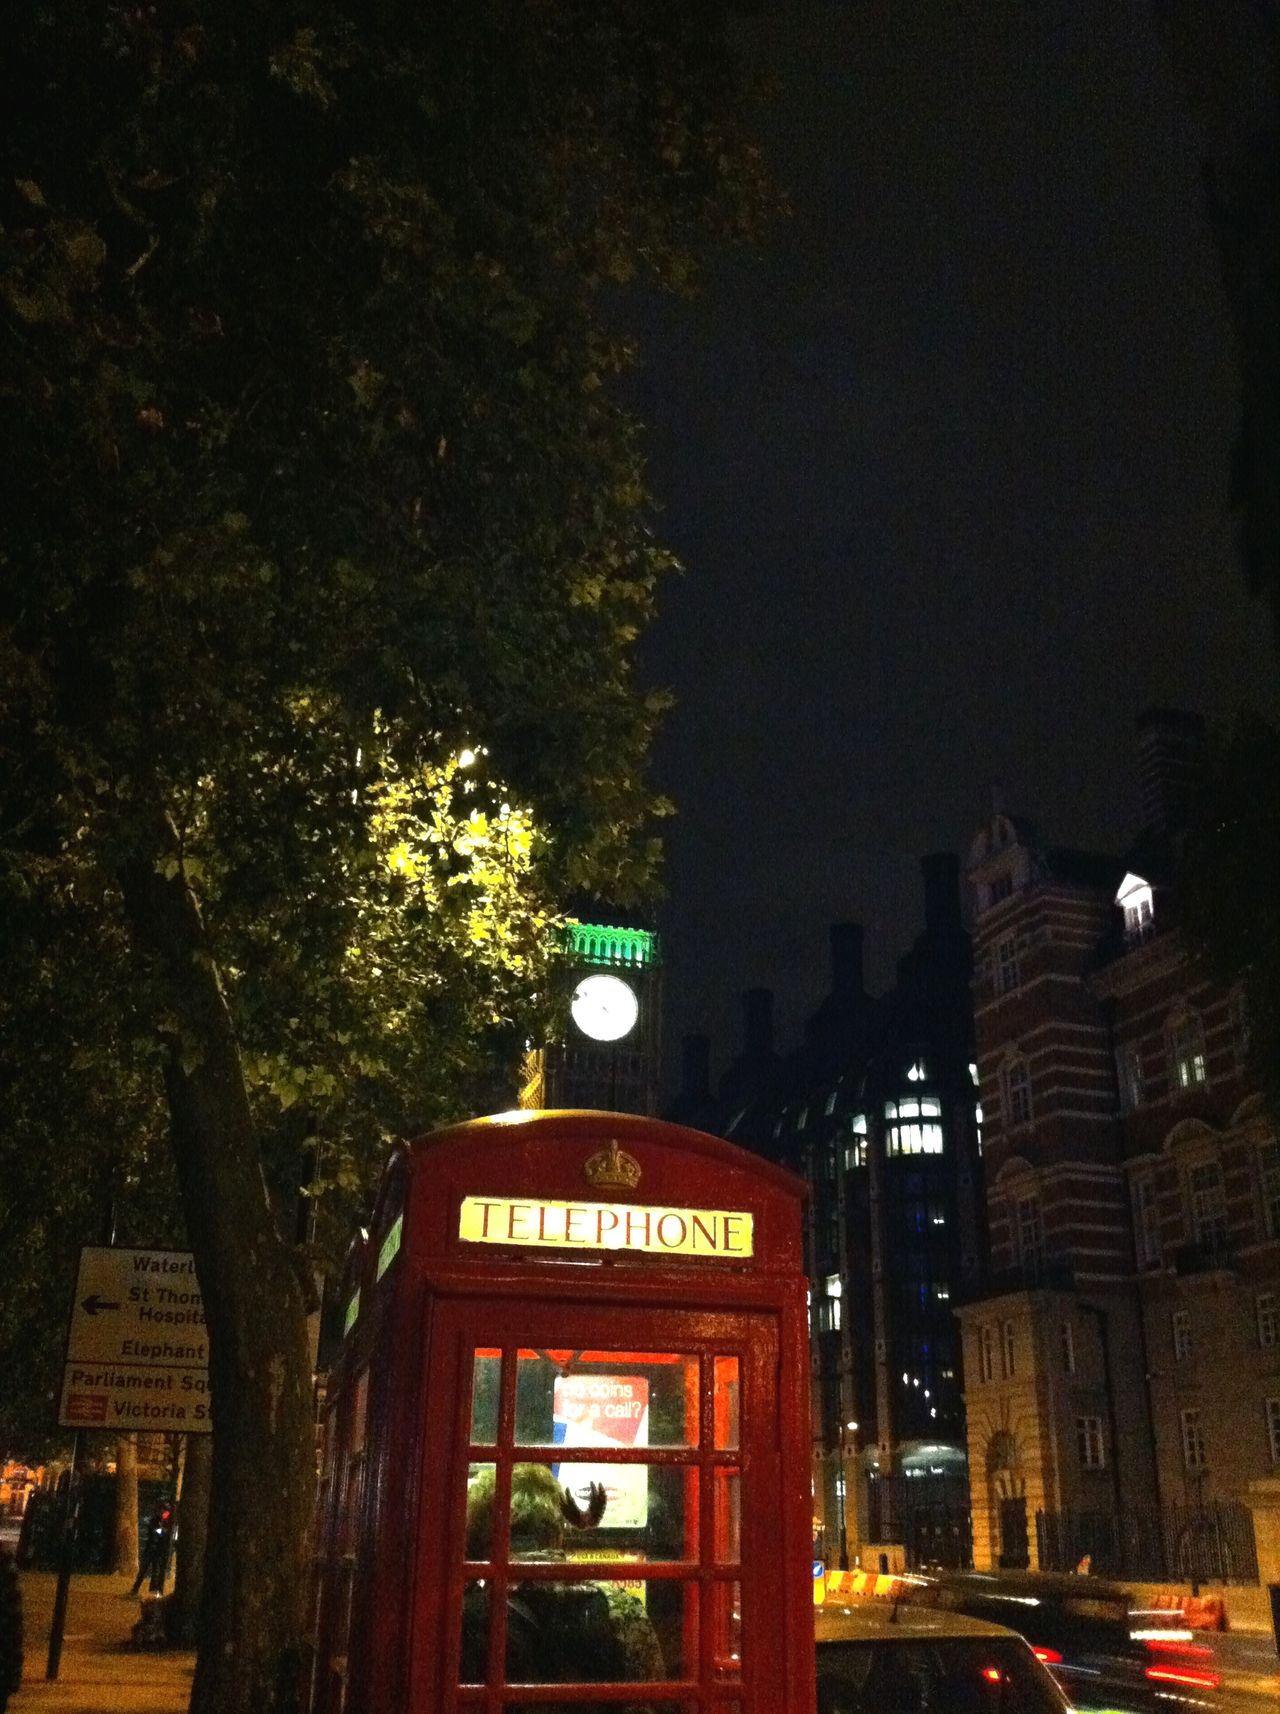 Night London London Streets Phone Booth Red London Phone Booth Bigben